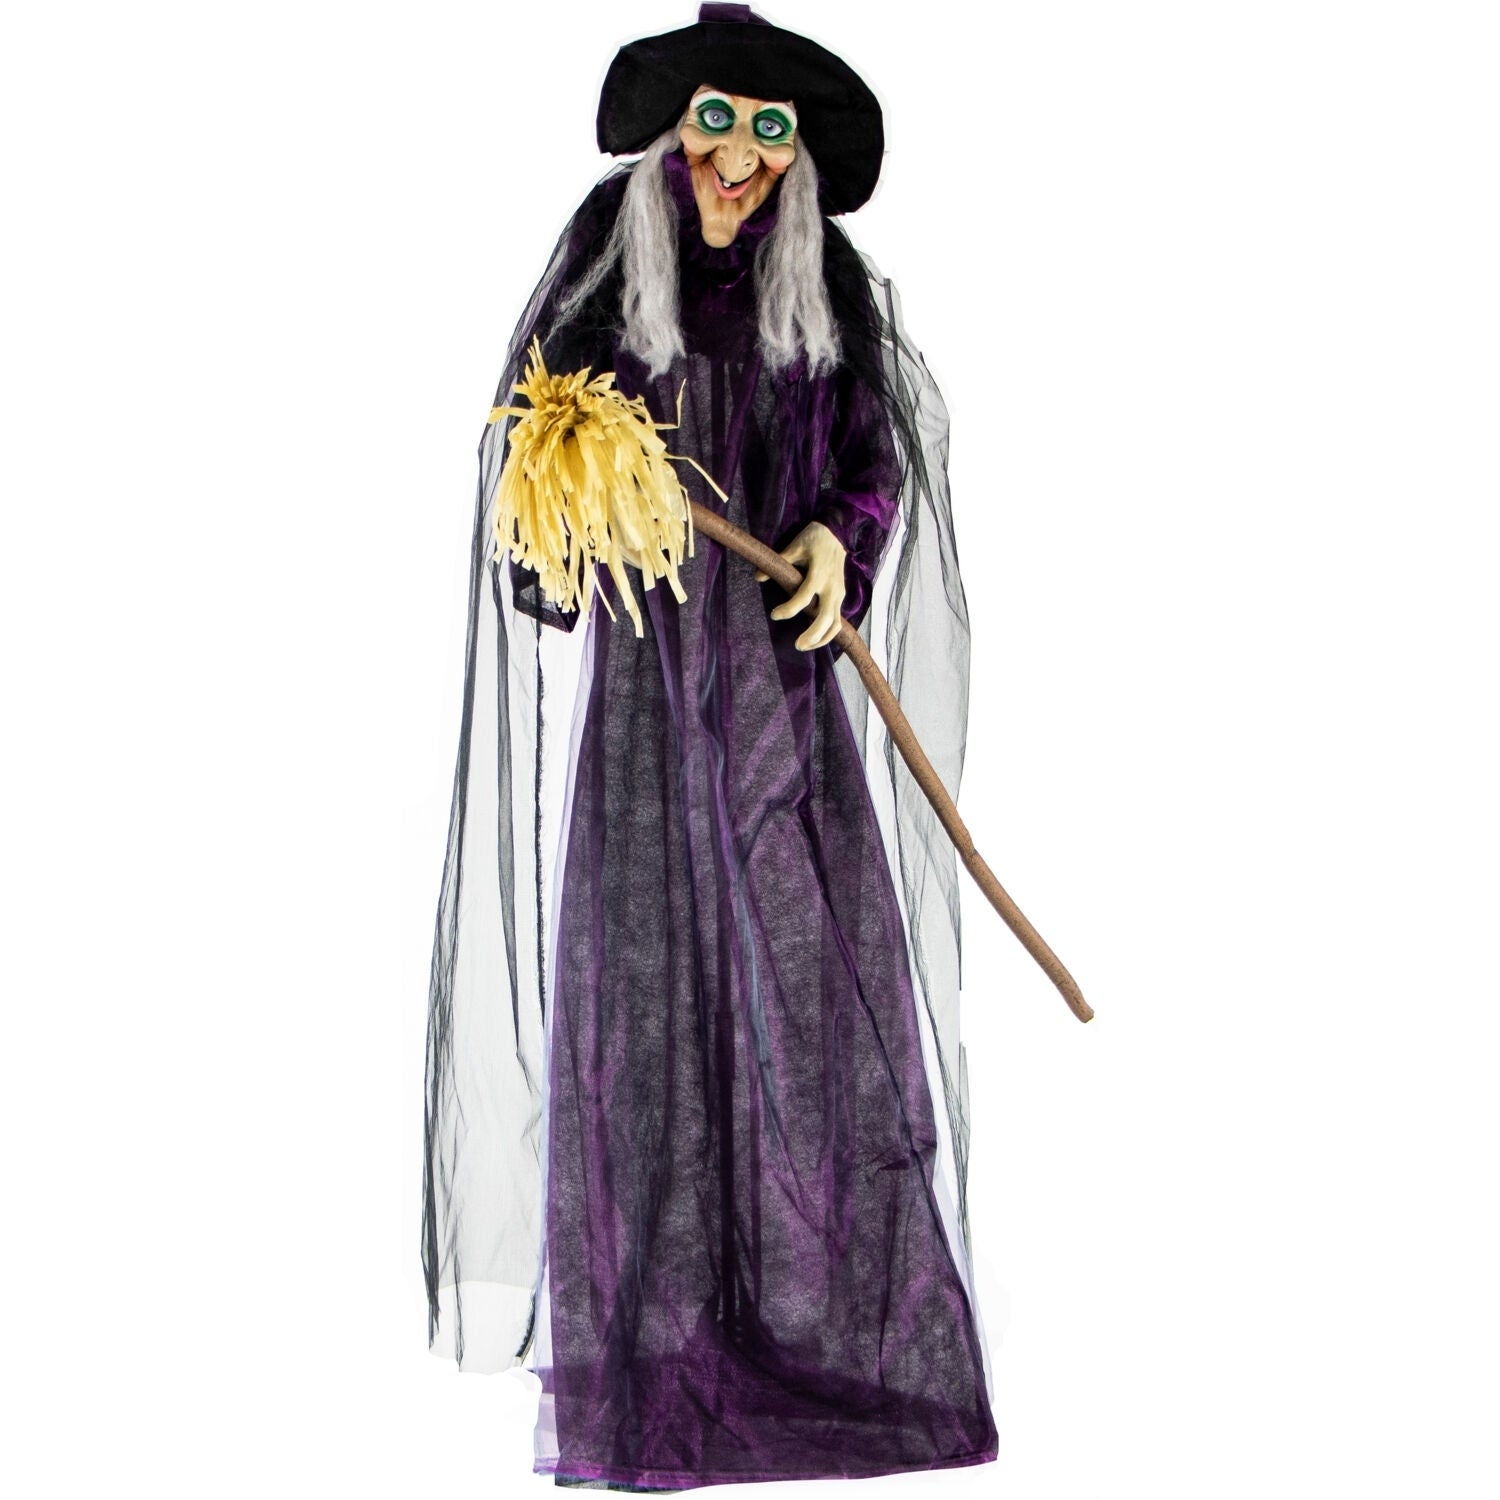 Life Size Animated Talking Witch w Broomstick & Rotating Body for Indoor or Outdoor Halloween Decoration Battery Operated